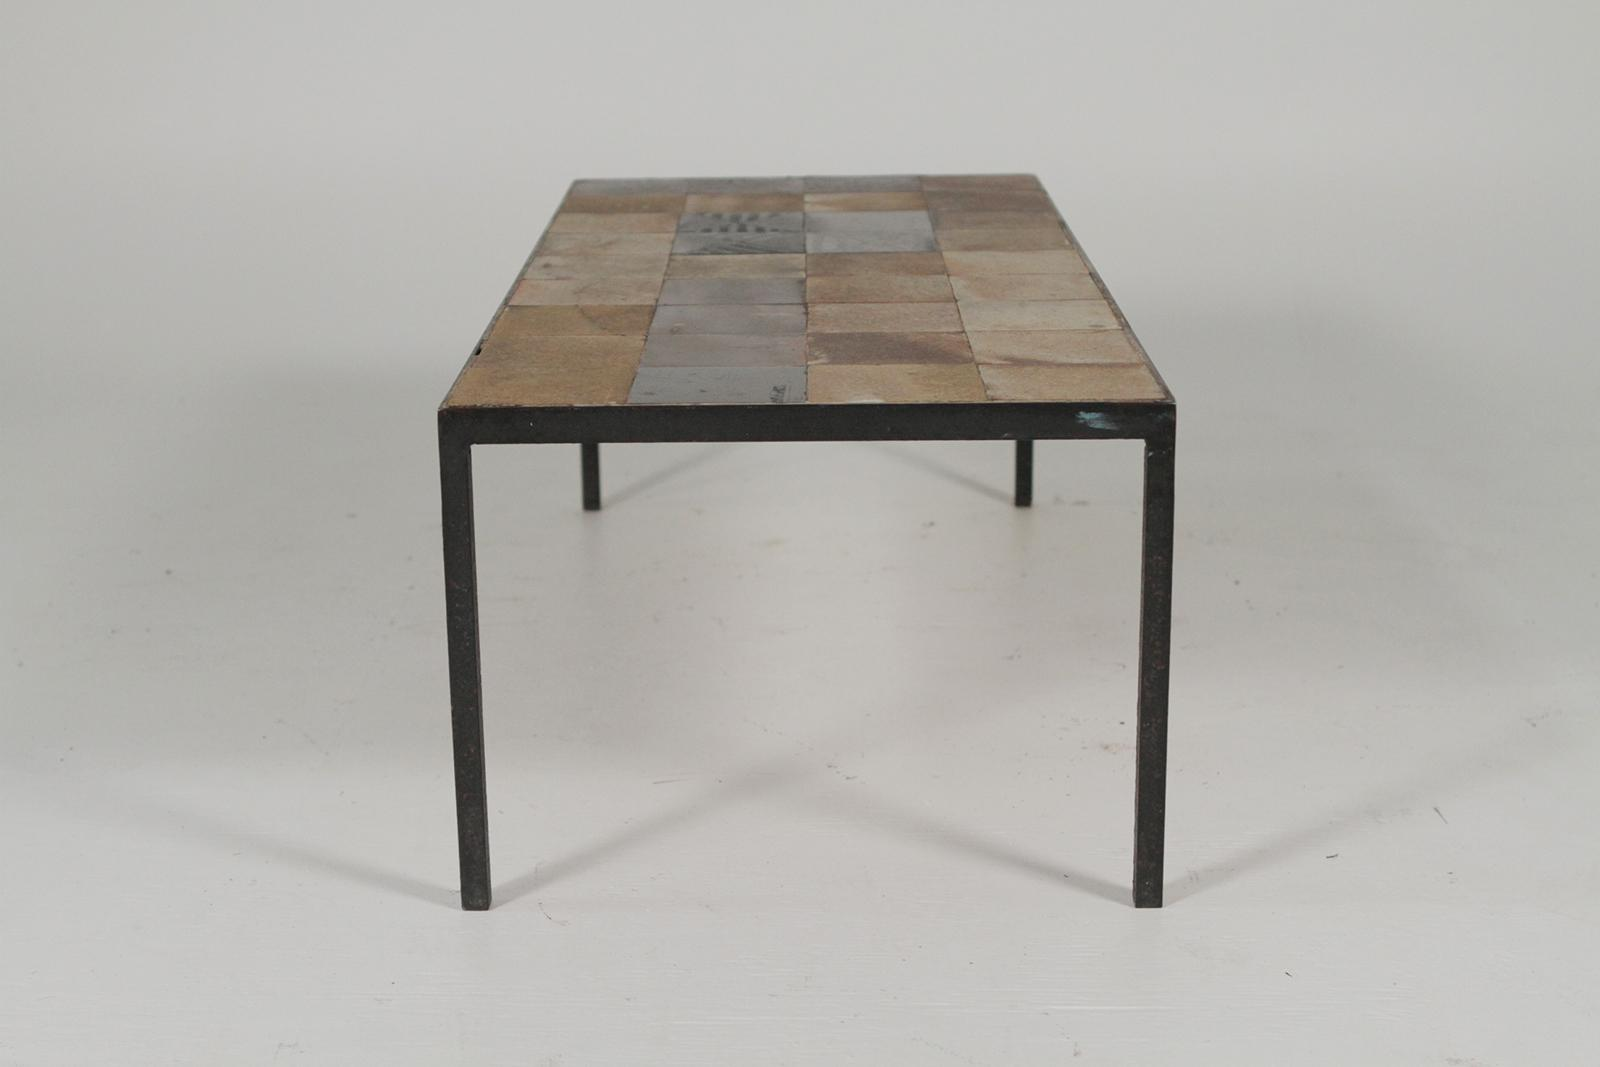 1960s Vintage Iron And Tile Coffee Table For Sale   Image 4 Of 8